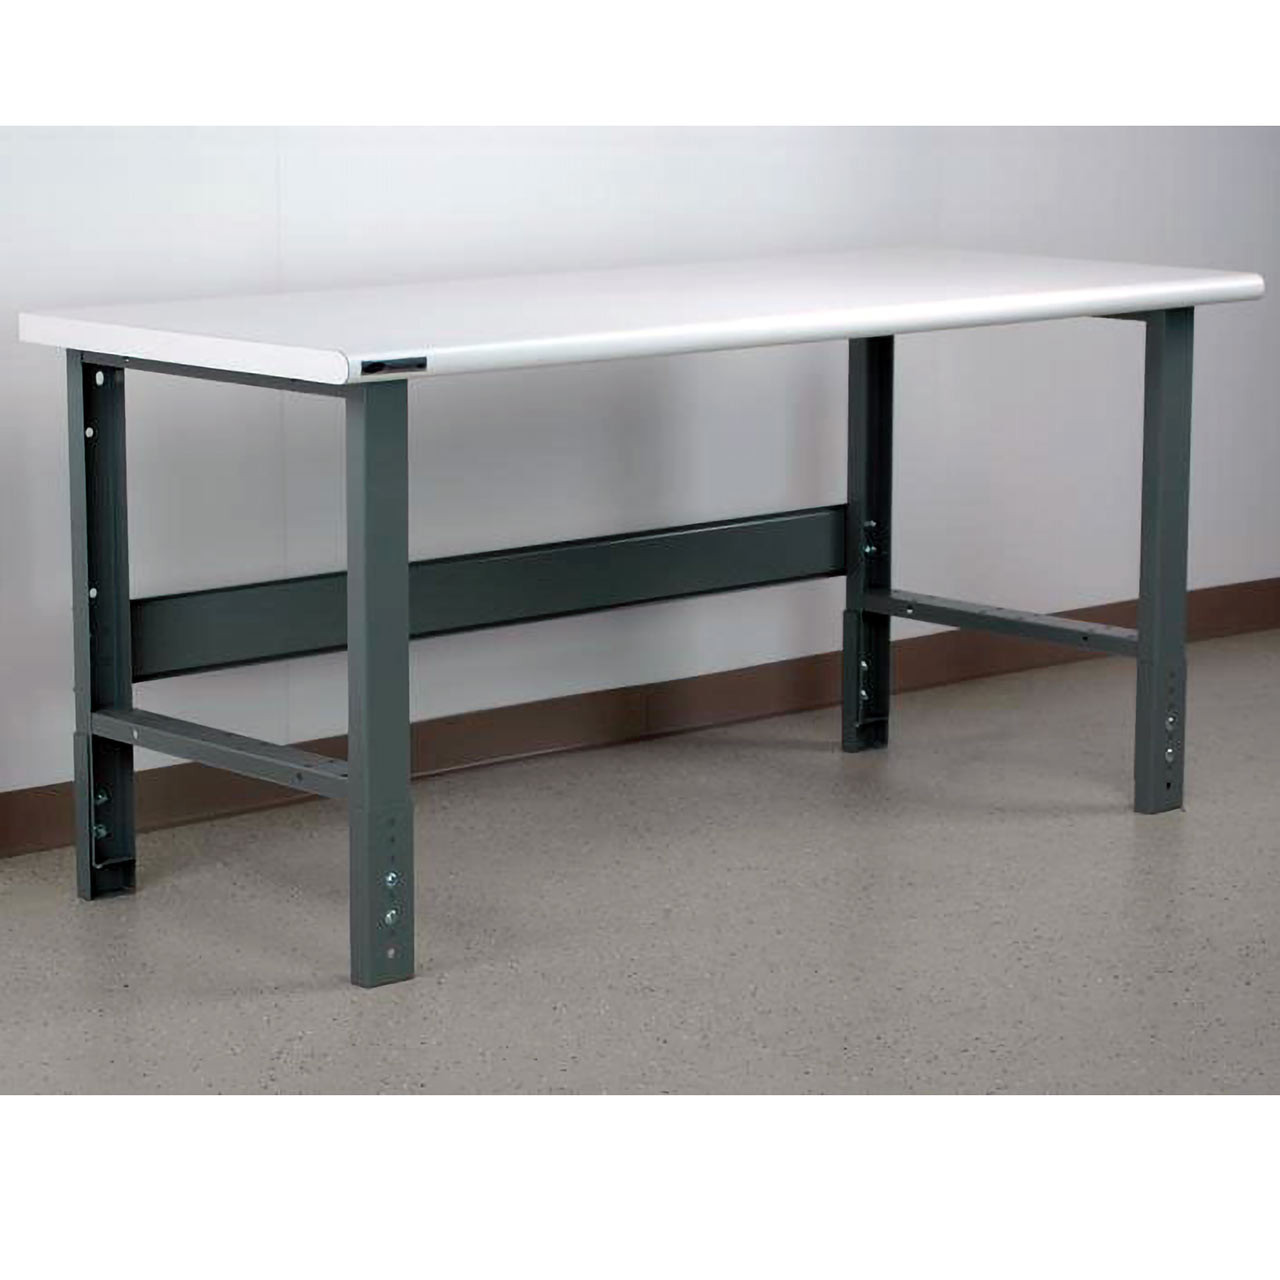 Manually Adjustable Height Workbench Bullnose Laminate Top